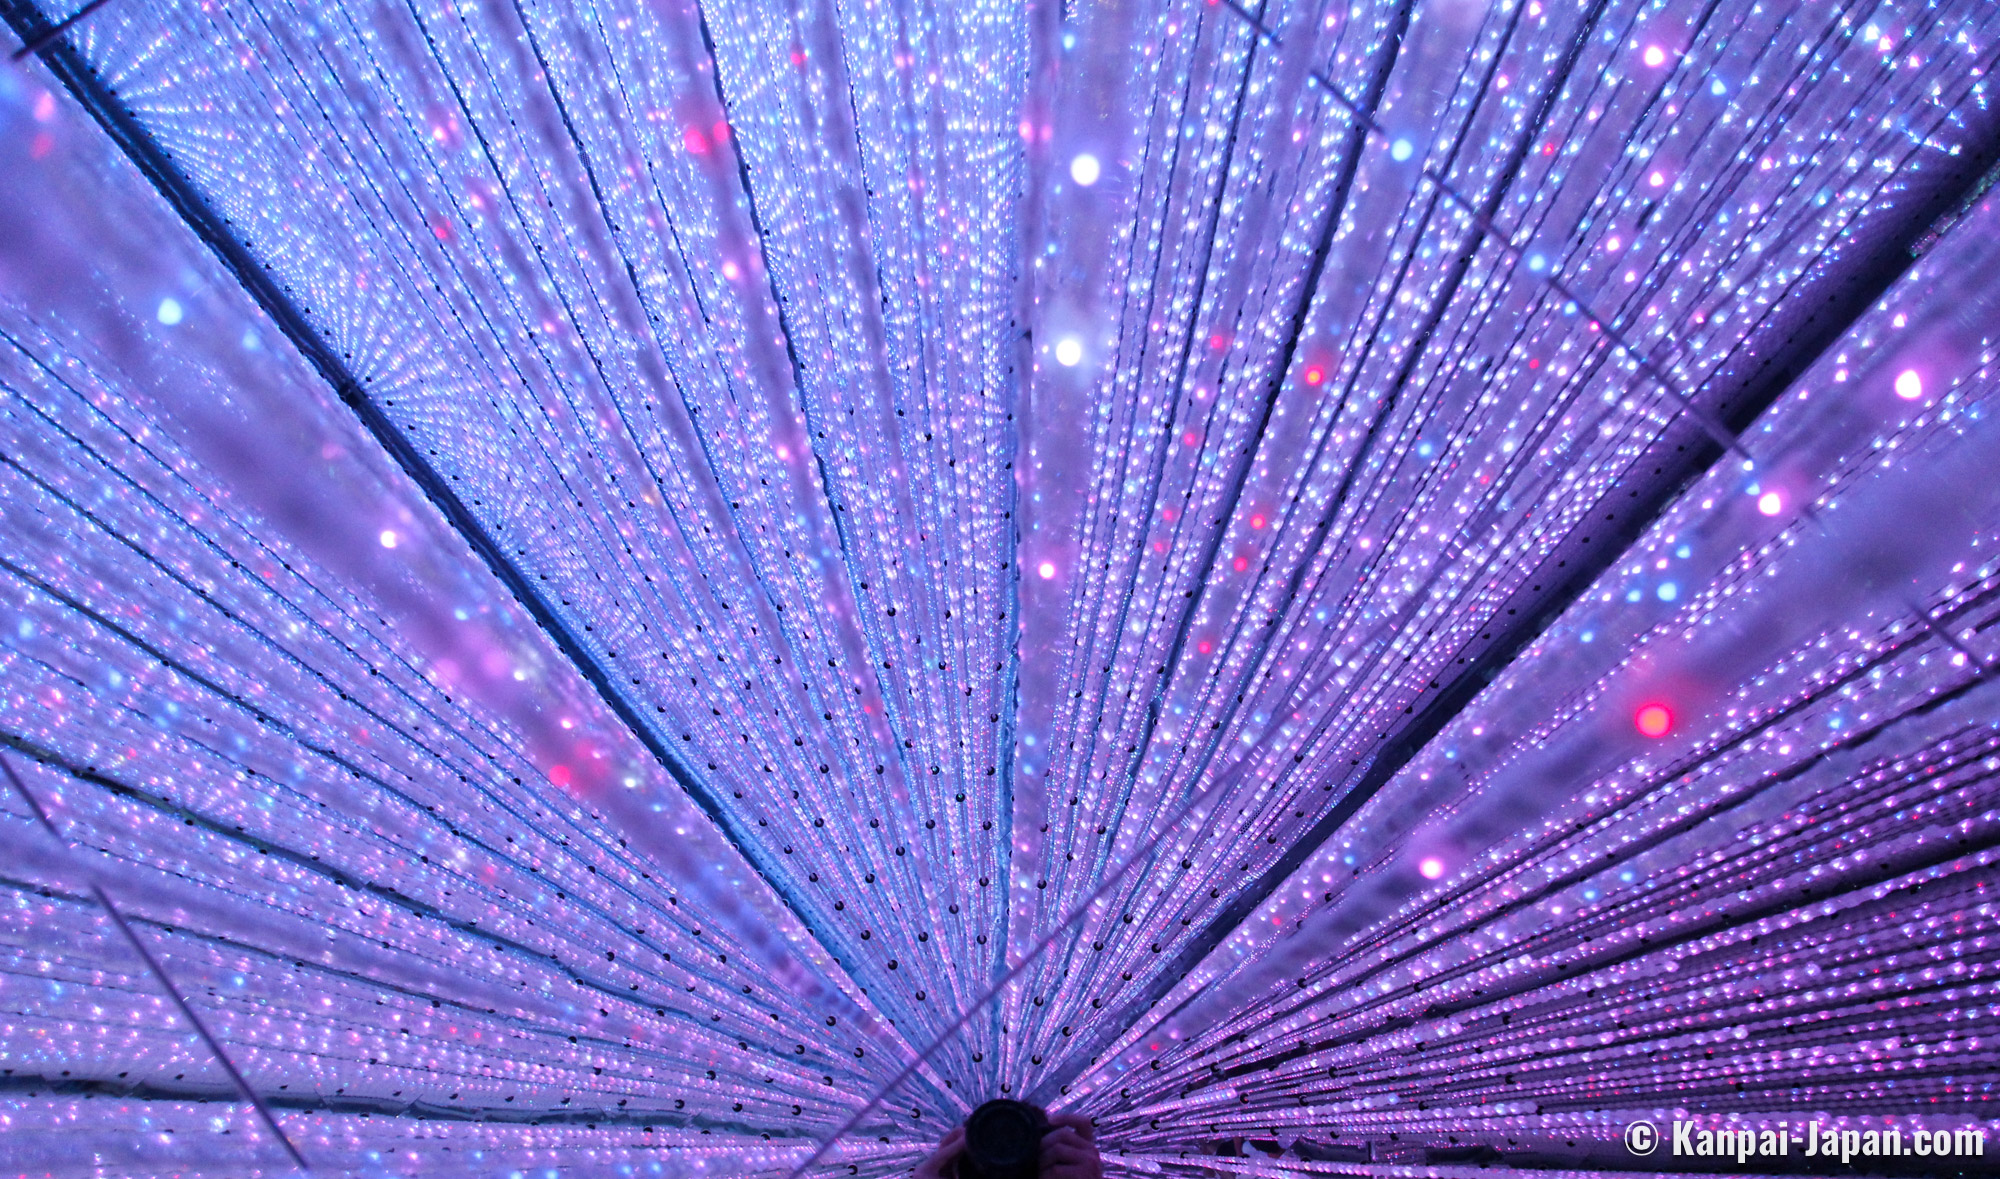 Teamlab Planets The Excellent Teamlab Bordeless Temporary Exhibition